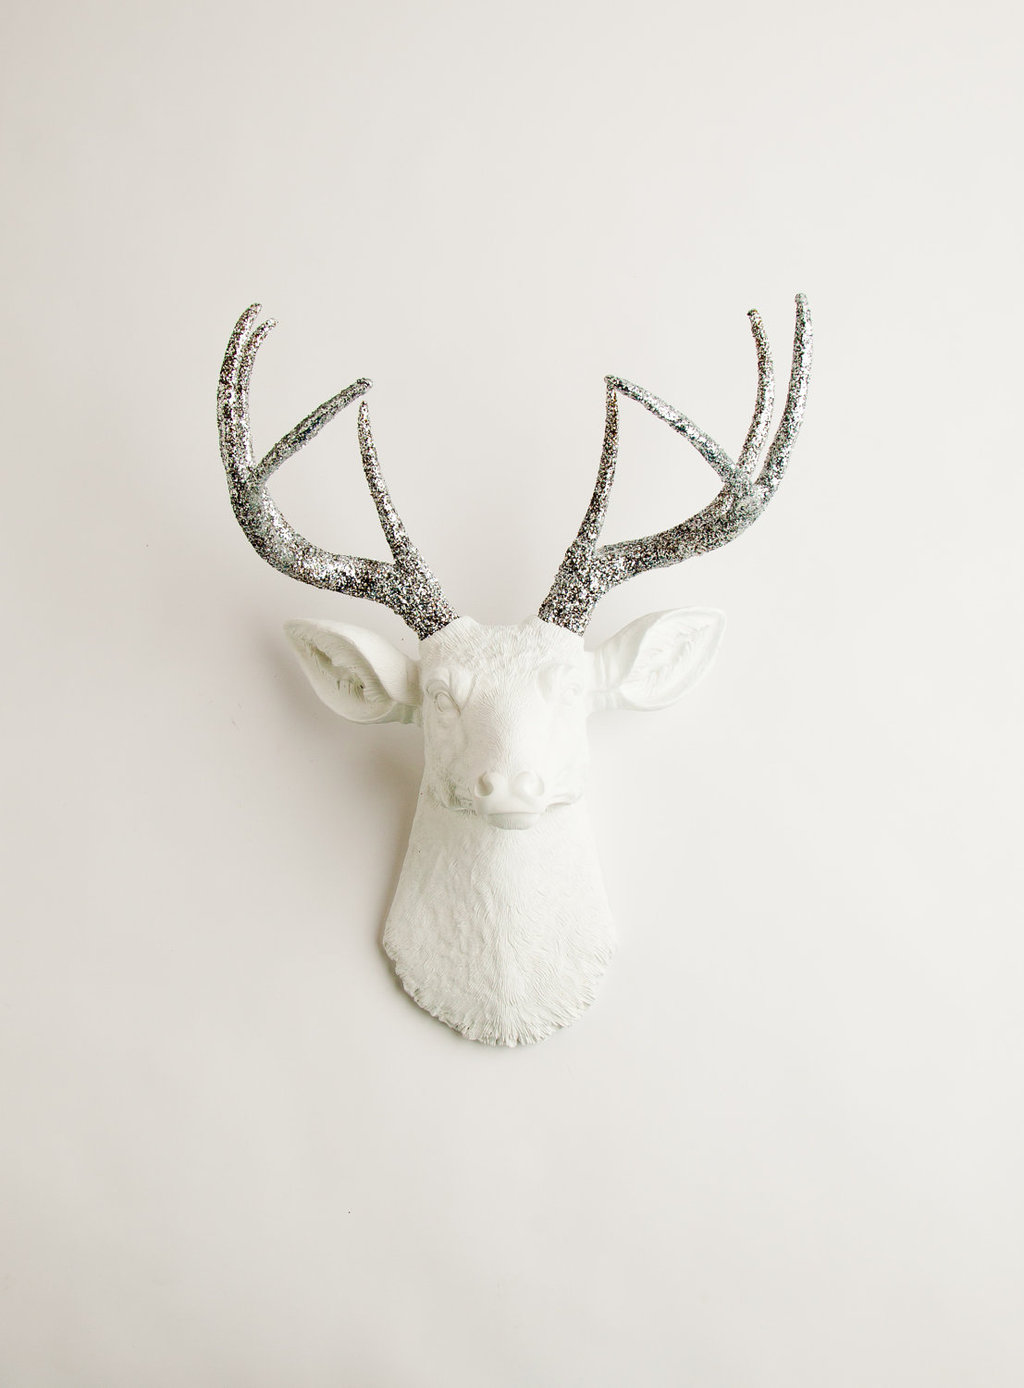 Rustic Wedding Decor White and Silver Antlers